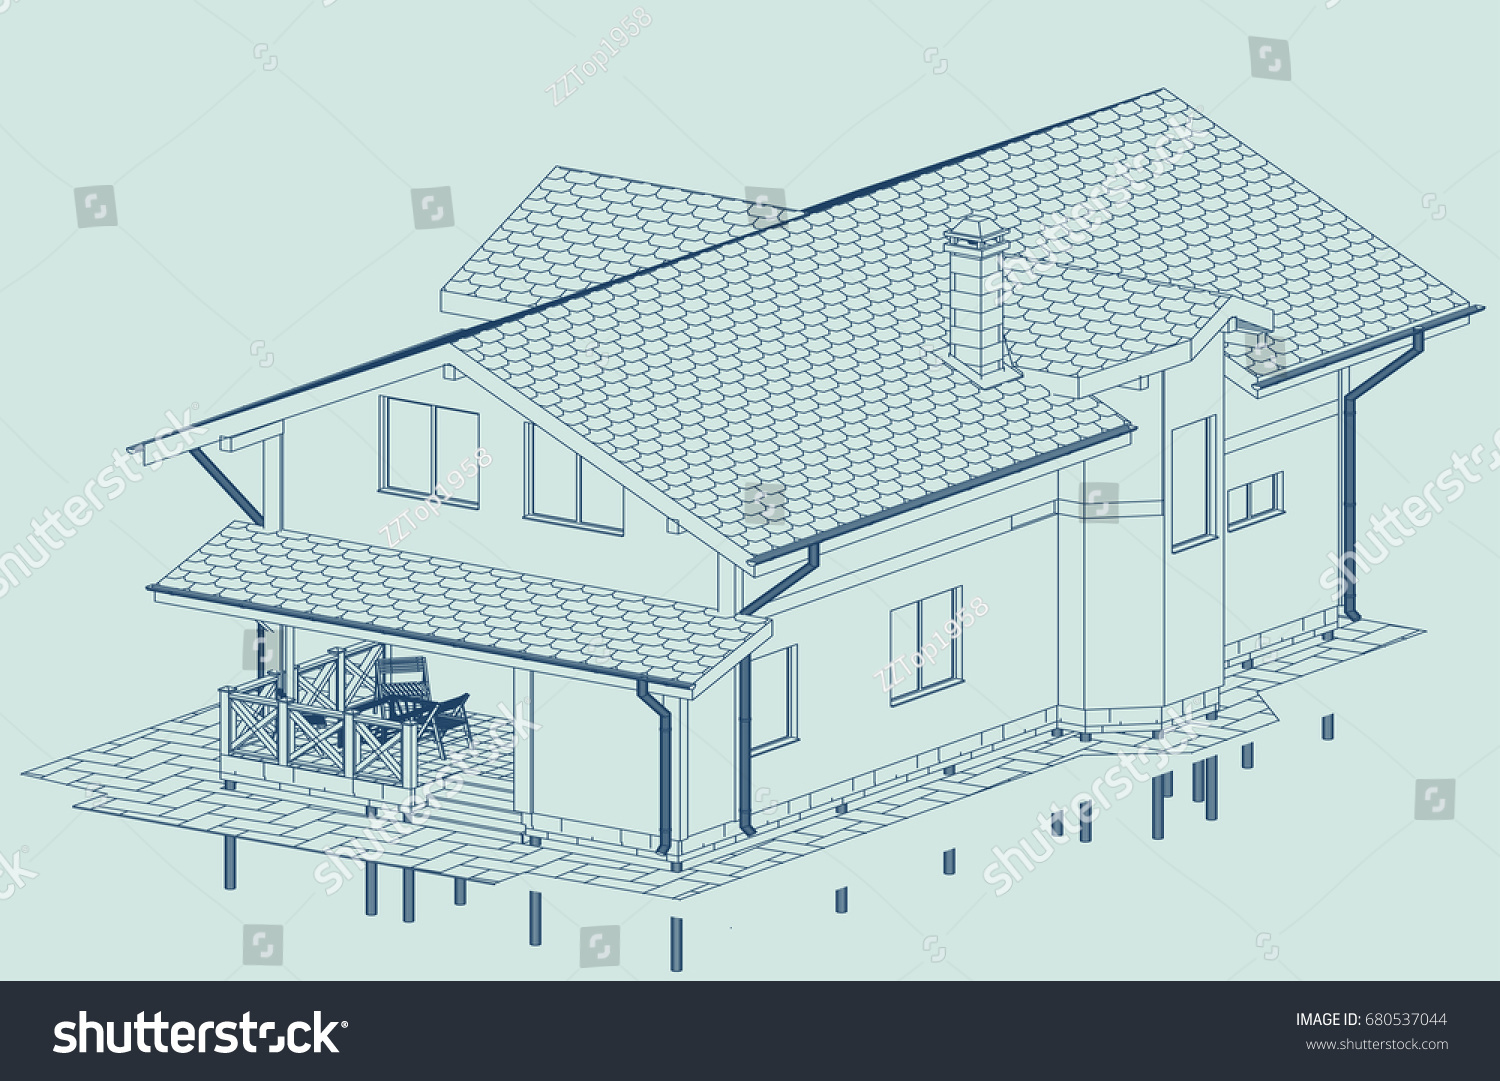 Authors Design Of Residential House Attic Window And Bay Blueprint Perspective View